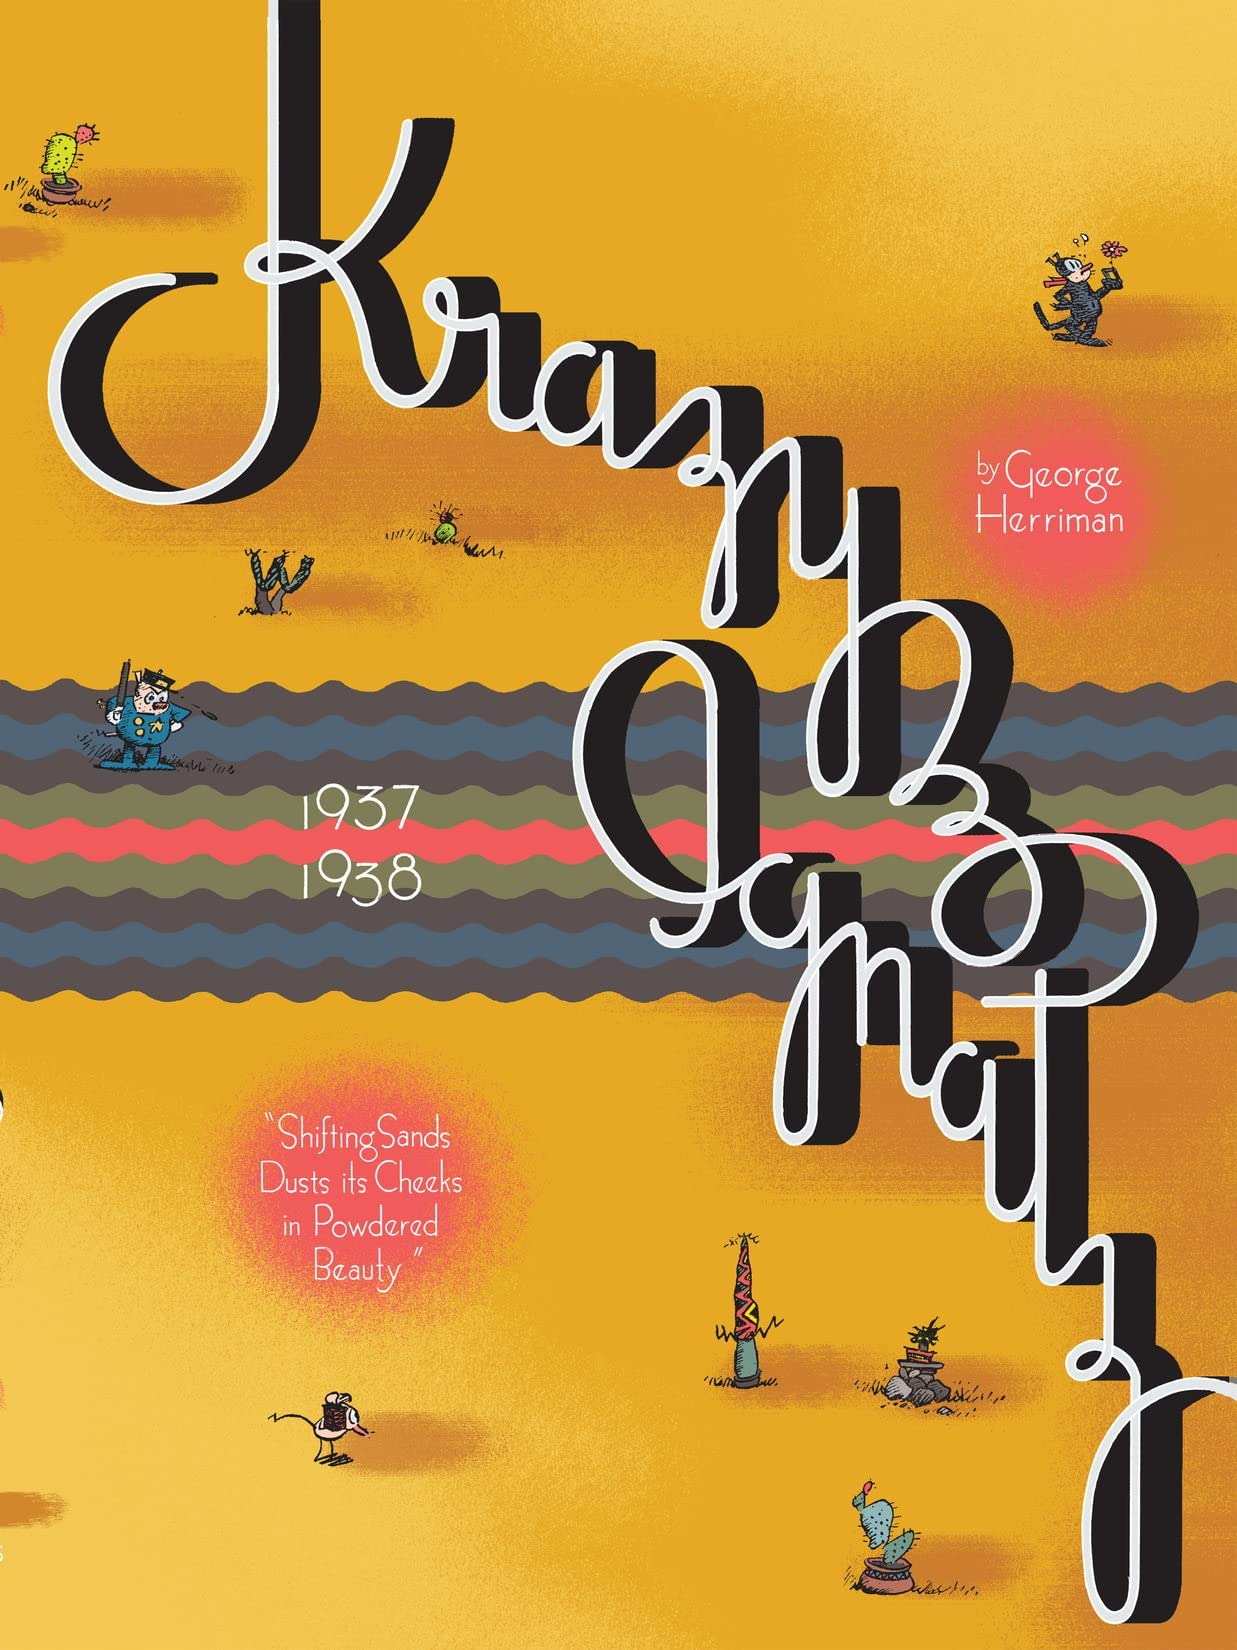 Krazy & Ignatz: 1937-1938: Shifting Sands Dusts its Cheeks in Powdered Beauty